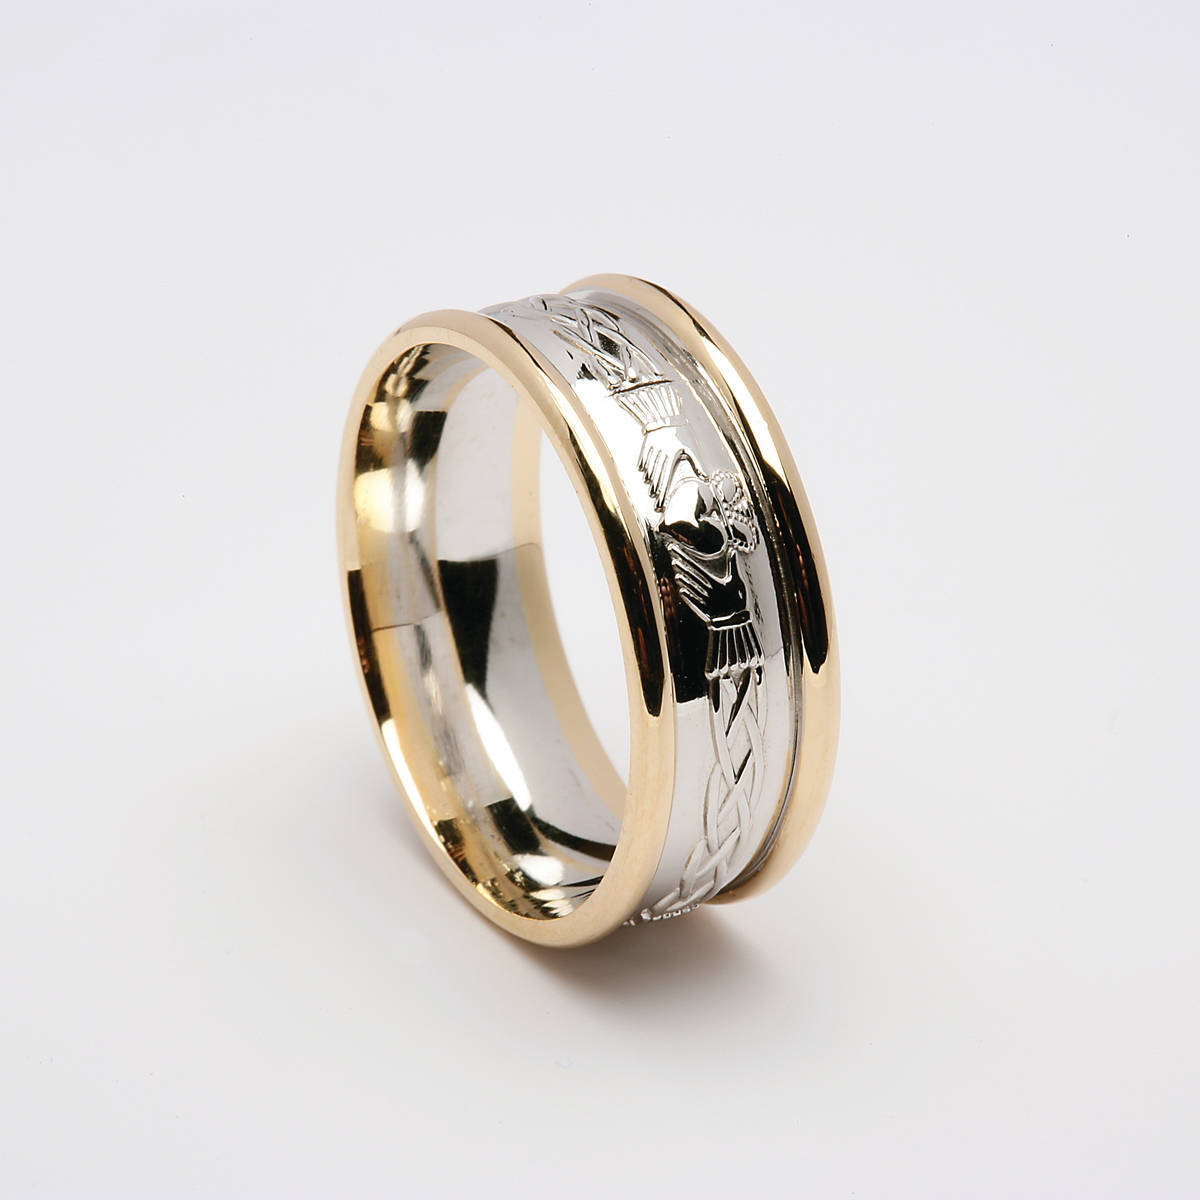 14 carat white gold man's Celtic Claddagh wedding ring with Heavy yellow gold rims.A very comfortable ring to wear and very beautiful. 8.7mm wide